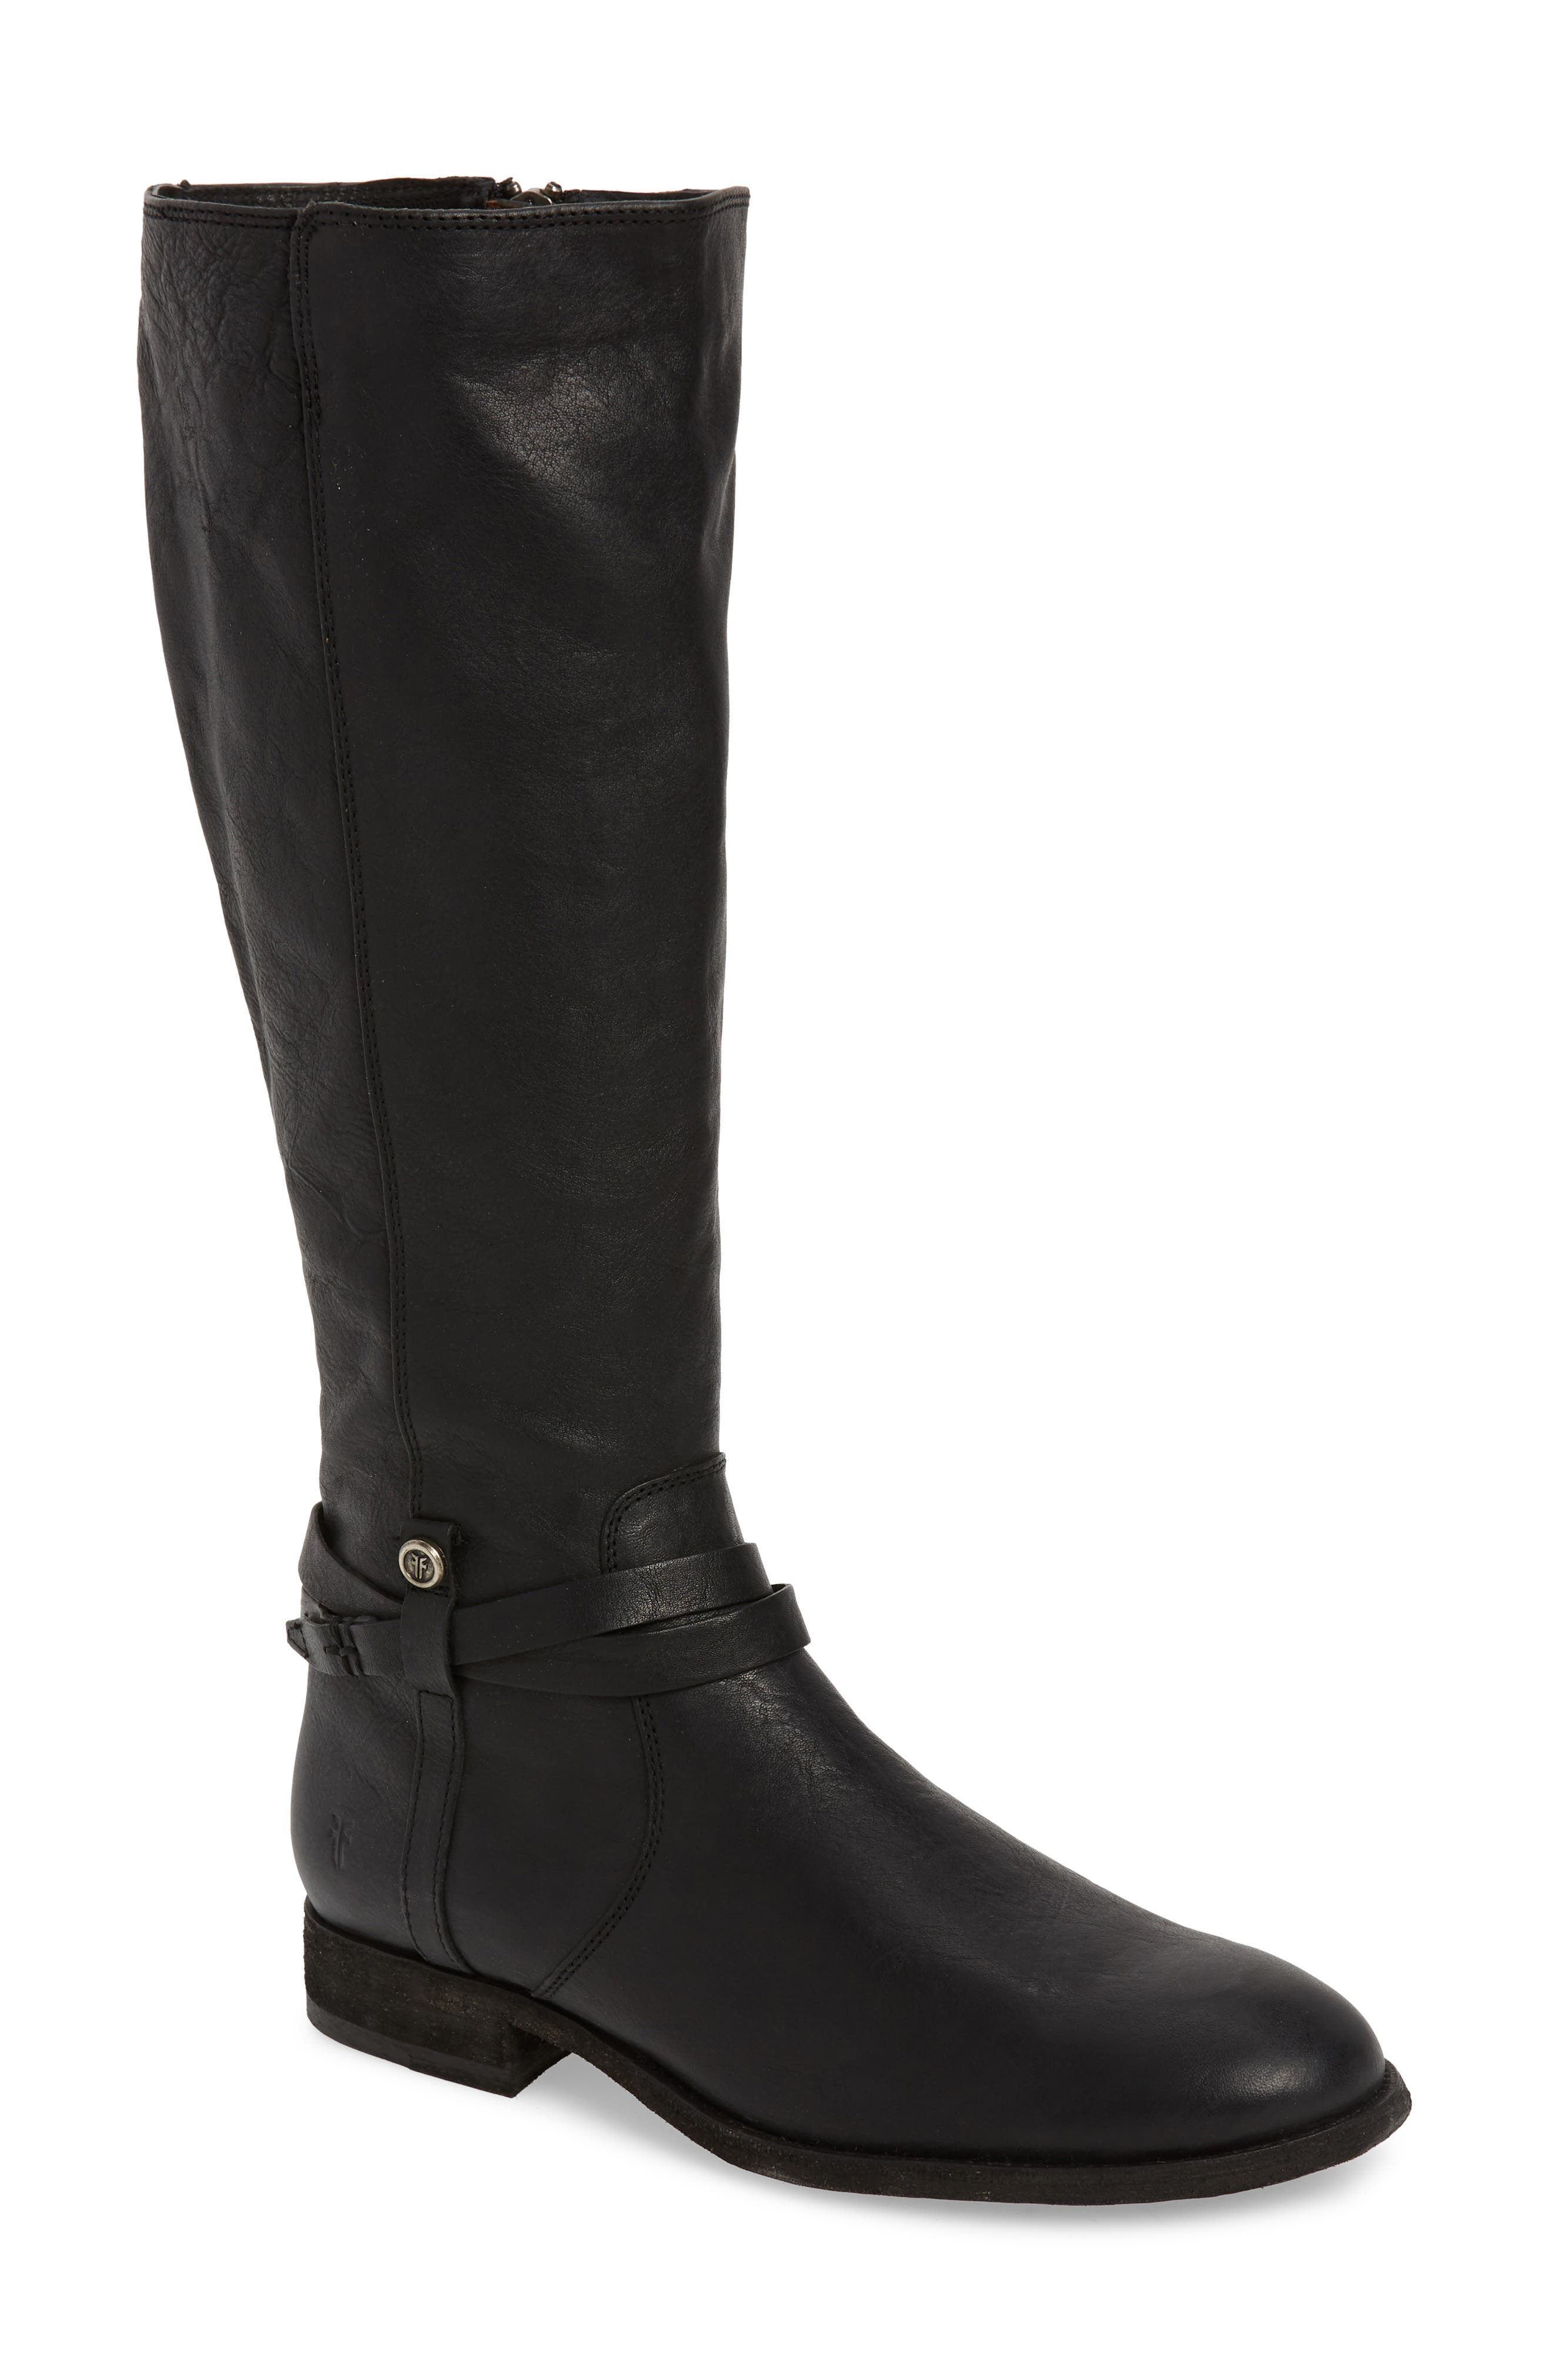 Frye Melissa Belted Knee-High Riding Boot, Ext Calf- Black